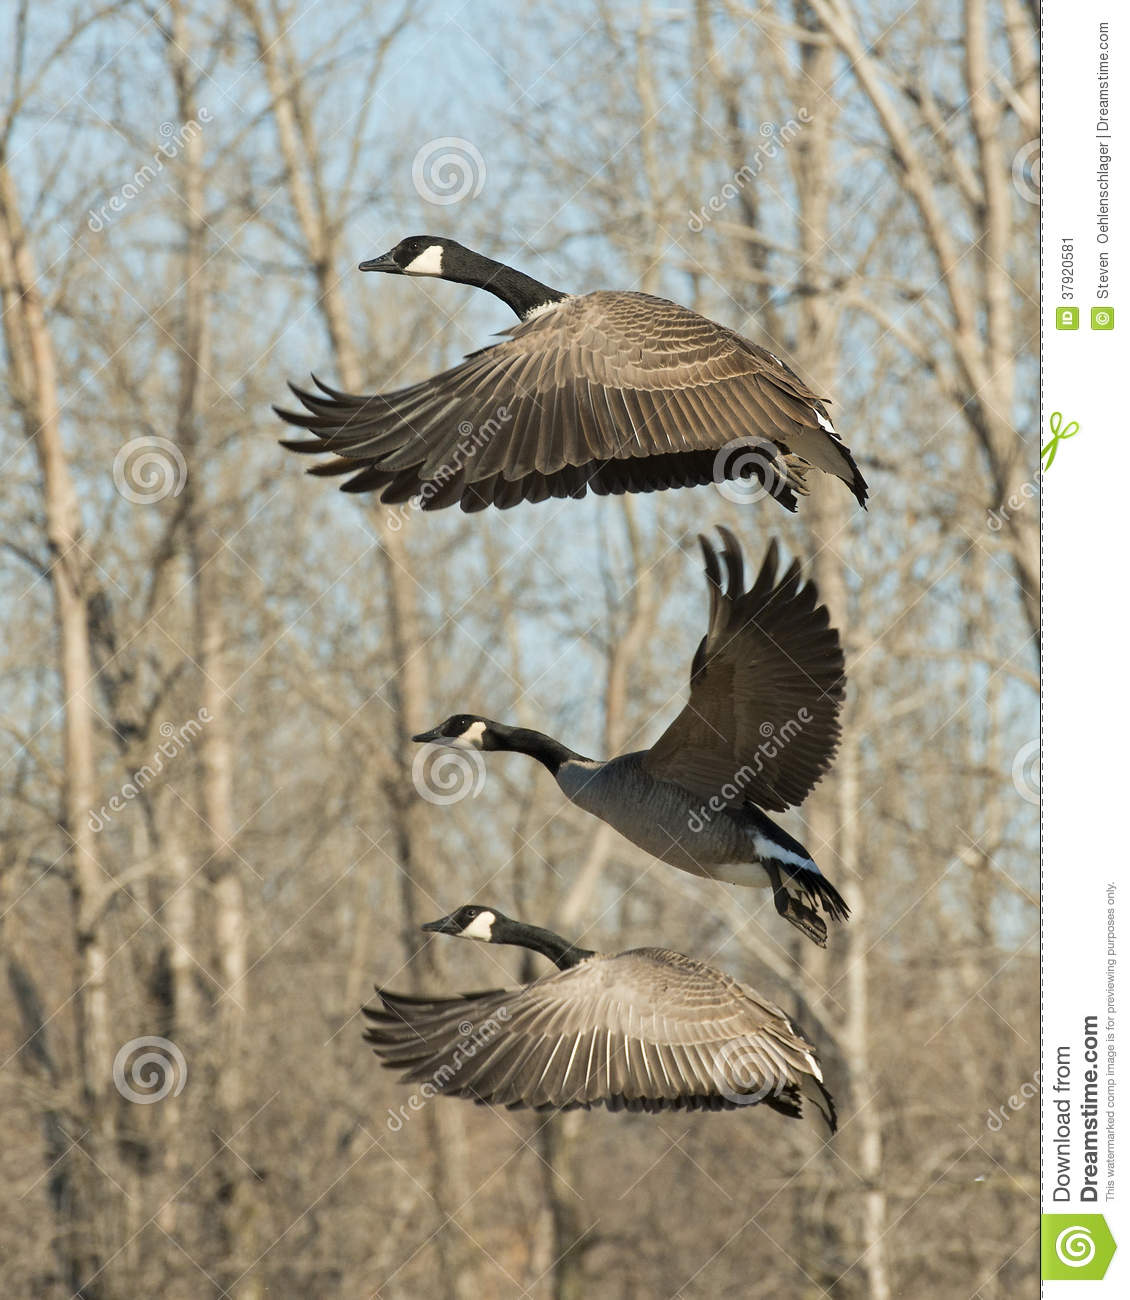 00a388ad6a Flying Geese stock image. Image of canada, winter, hunting - 37920581